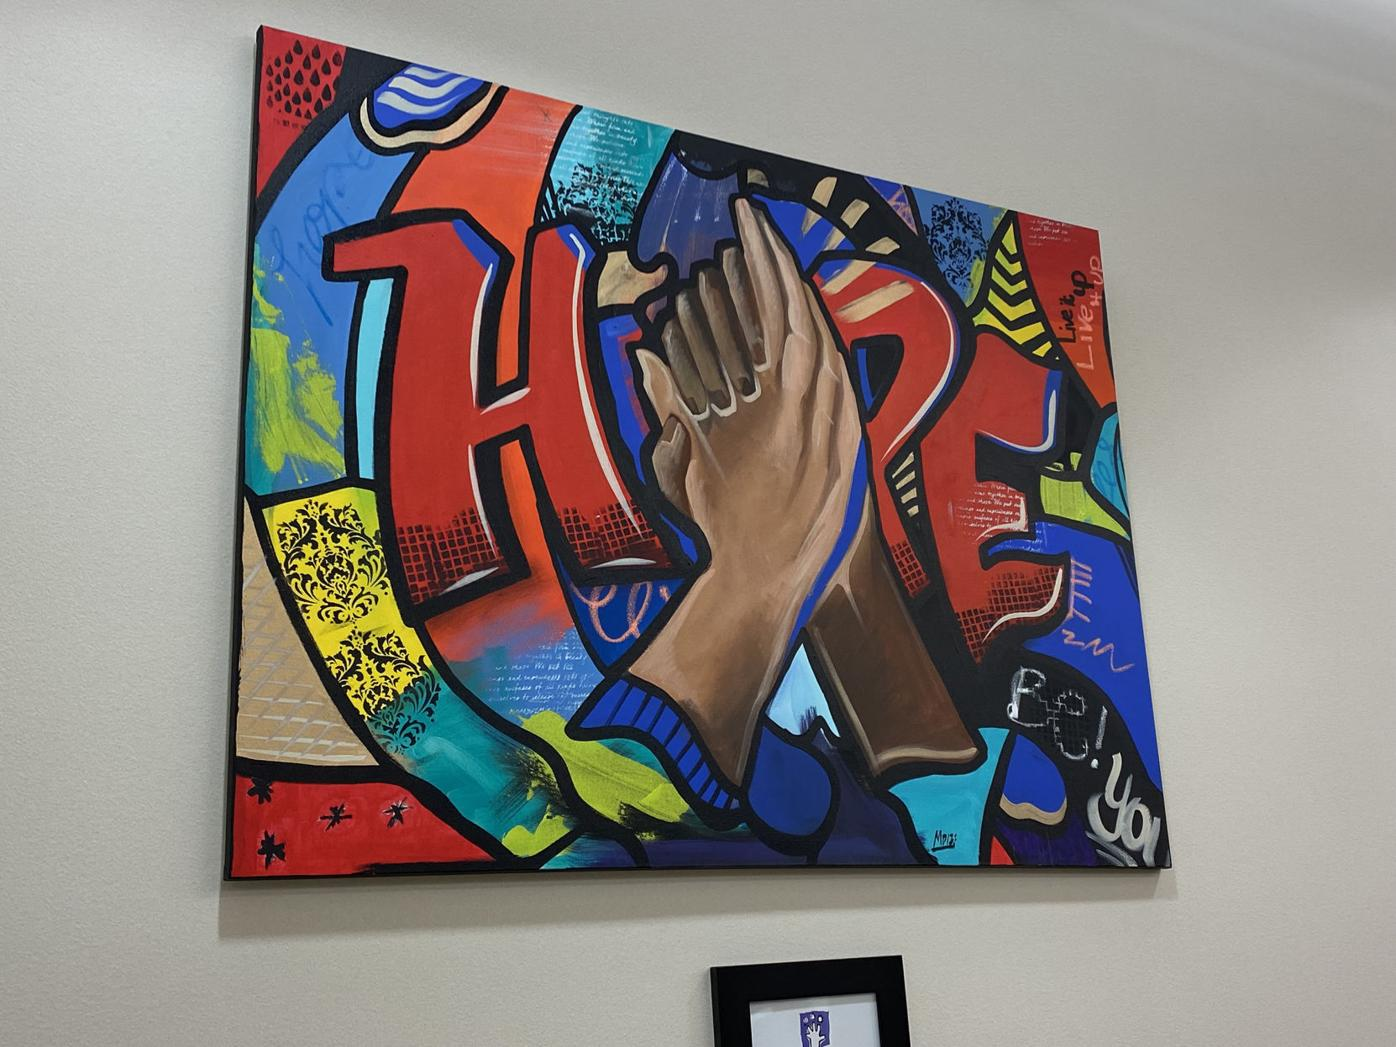 Fort Bend County uses art expression to encourage incarcerated youth